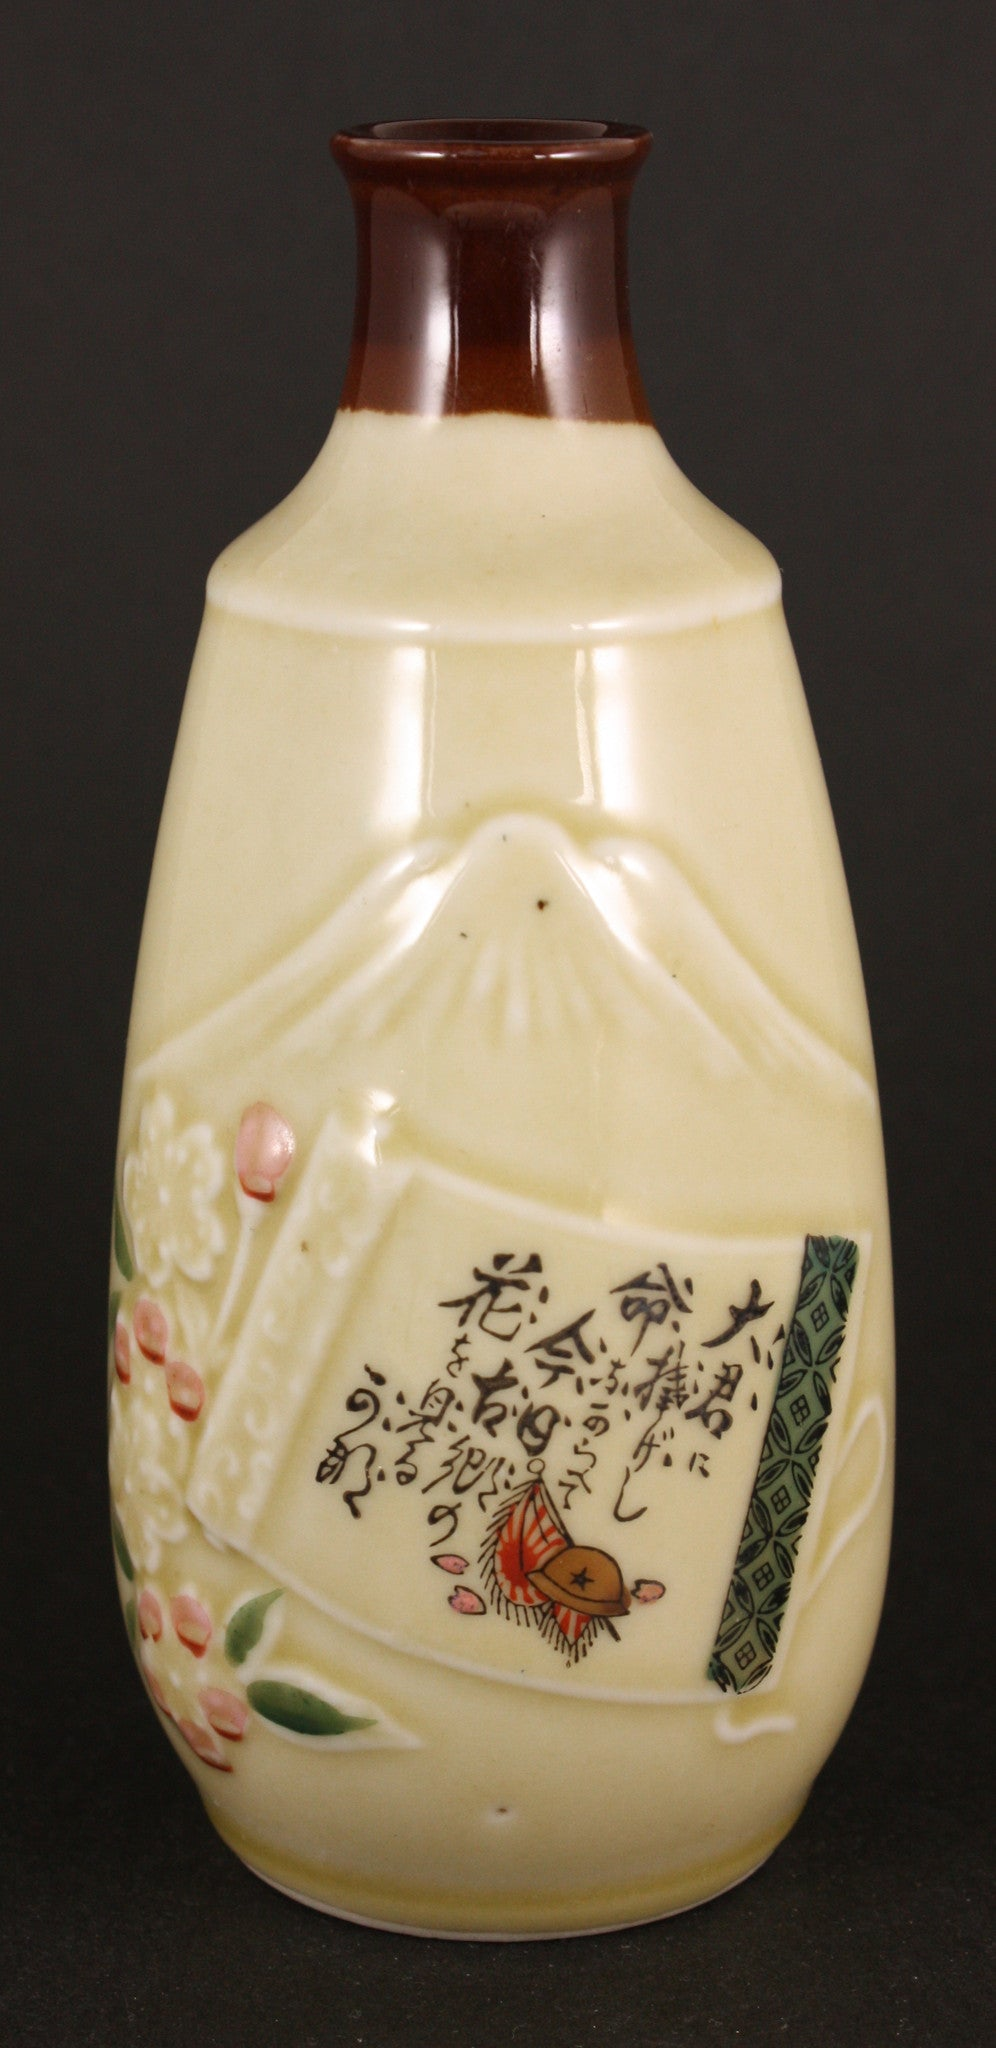 Antique Japnese Military WW2 China Incident Mount Fuji Army Sake Bottle